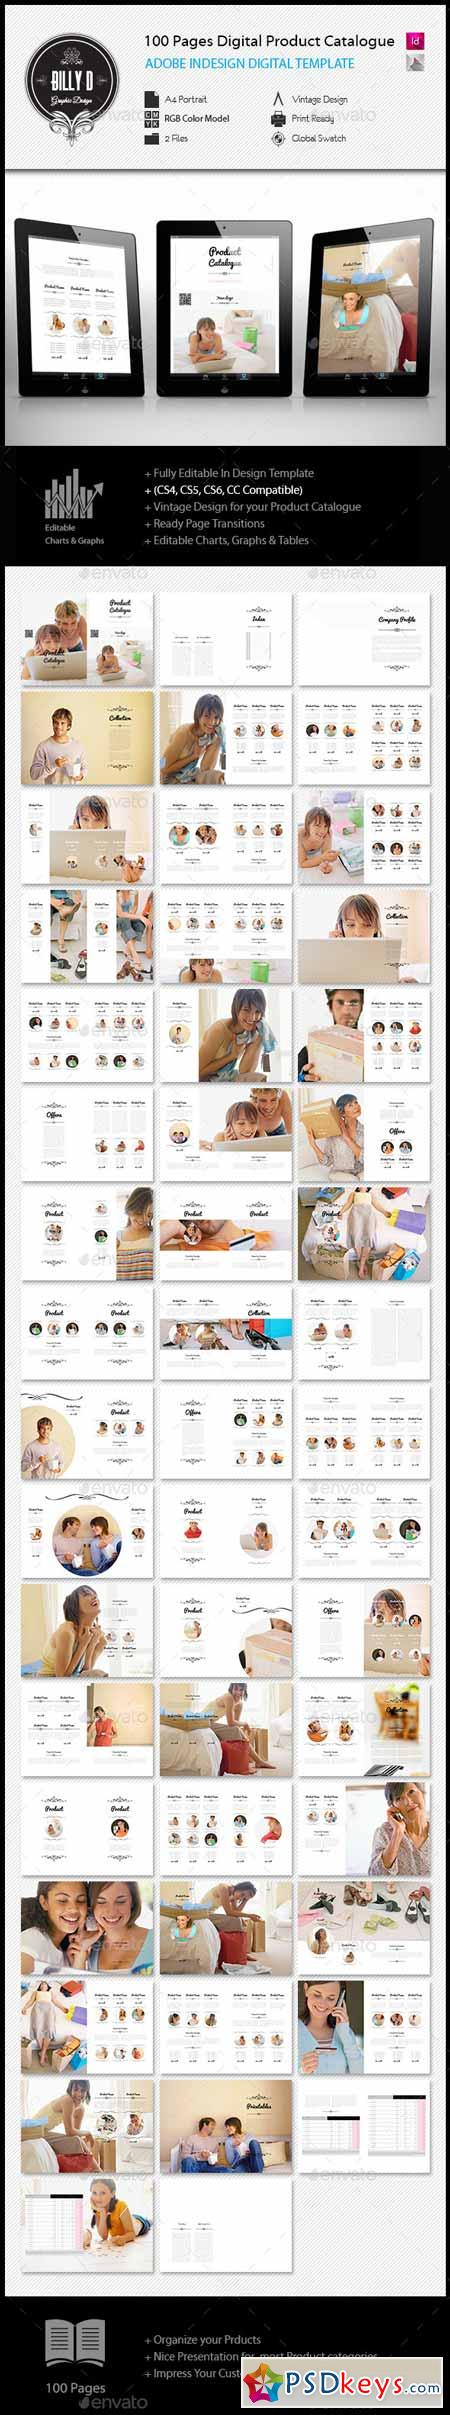 100 pages A4 Digital Product Catalogue Template 11909003